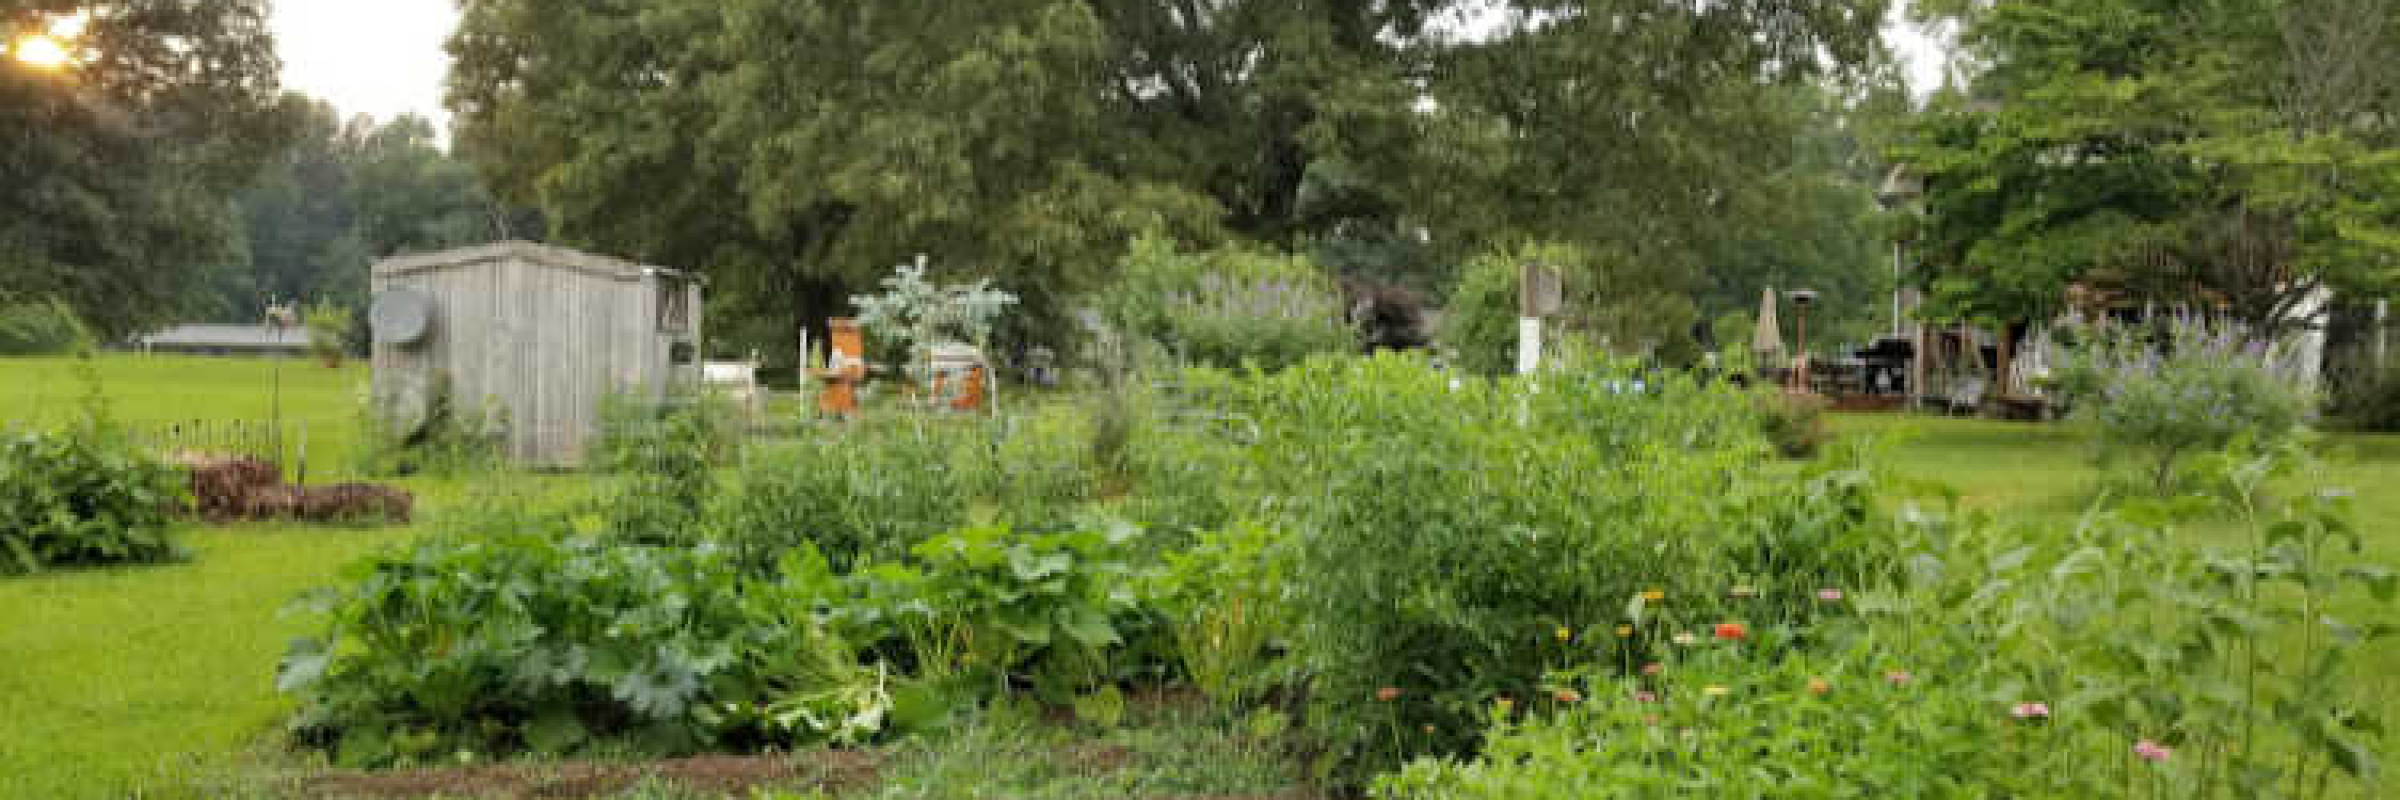 Vegetable Garden with barn and trees in background